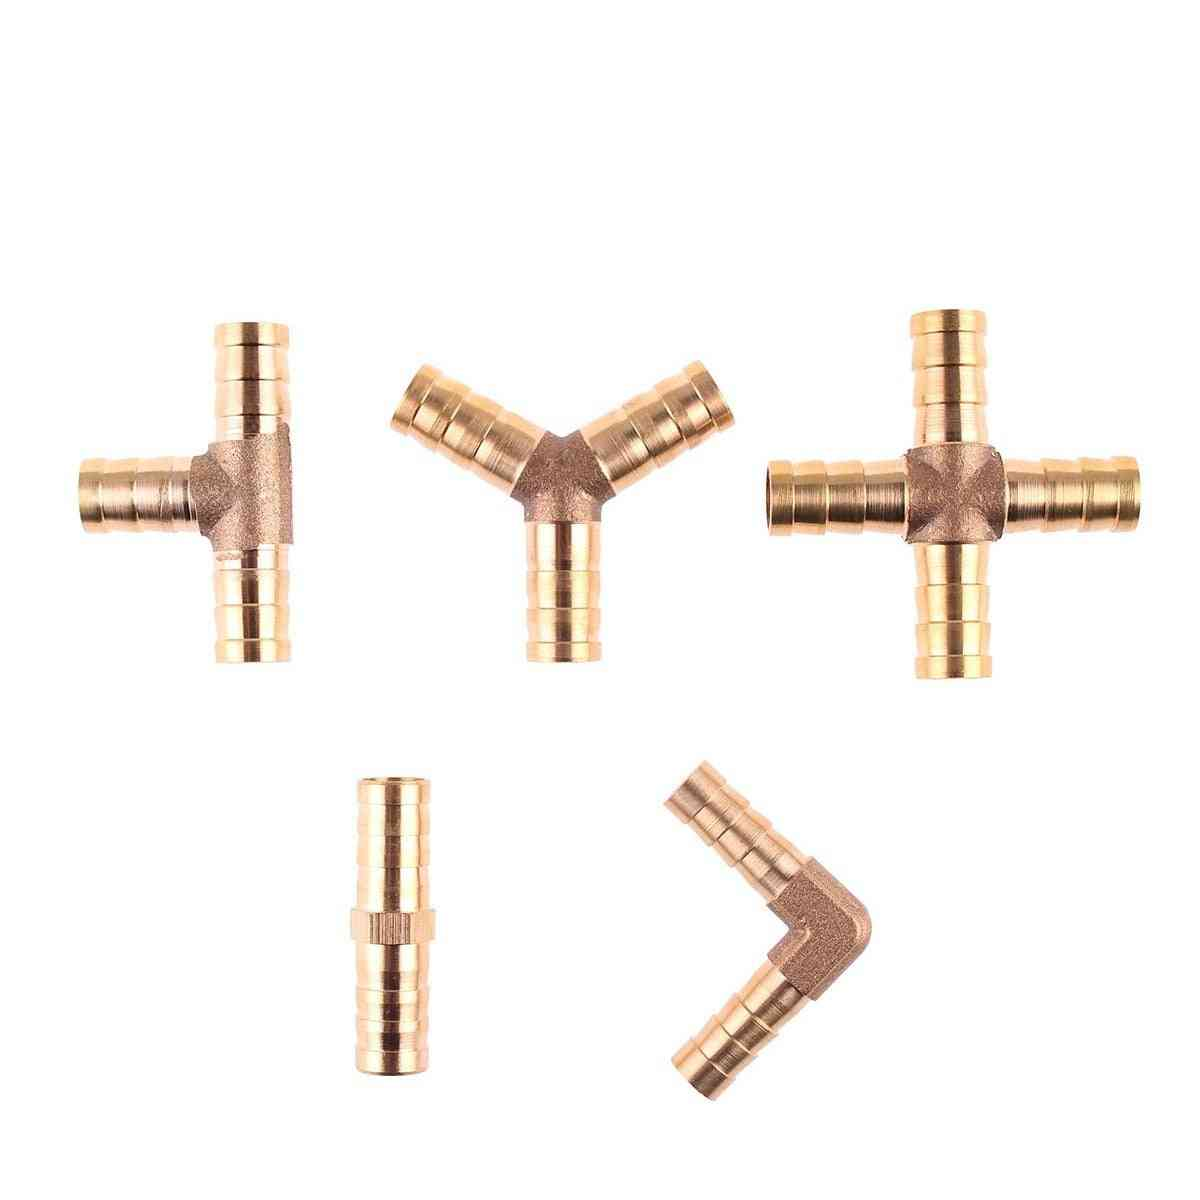 Brass Barb Pipe Fitting Straight Elbow Hose, Copper Barbed Connector Joint Coupler Adapter